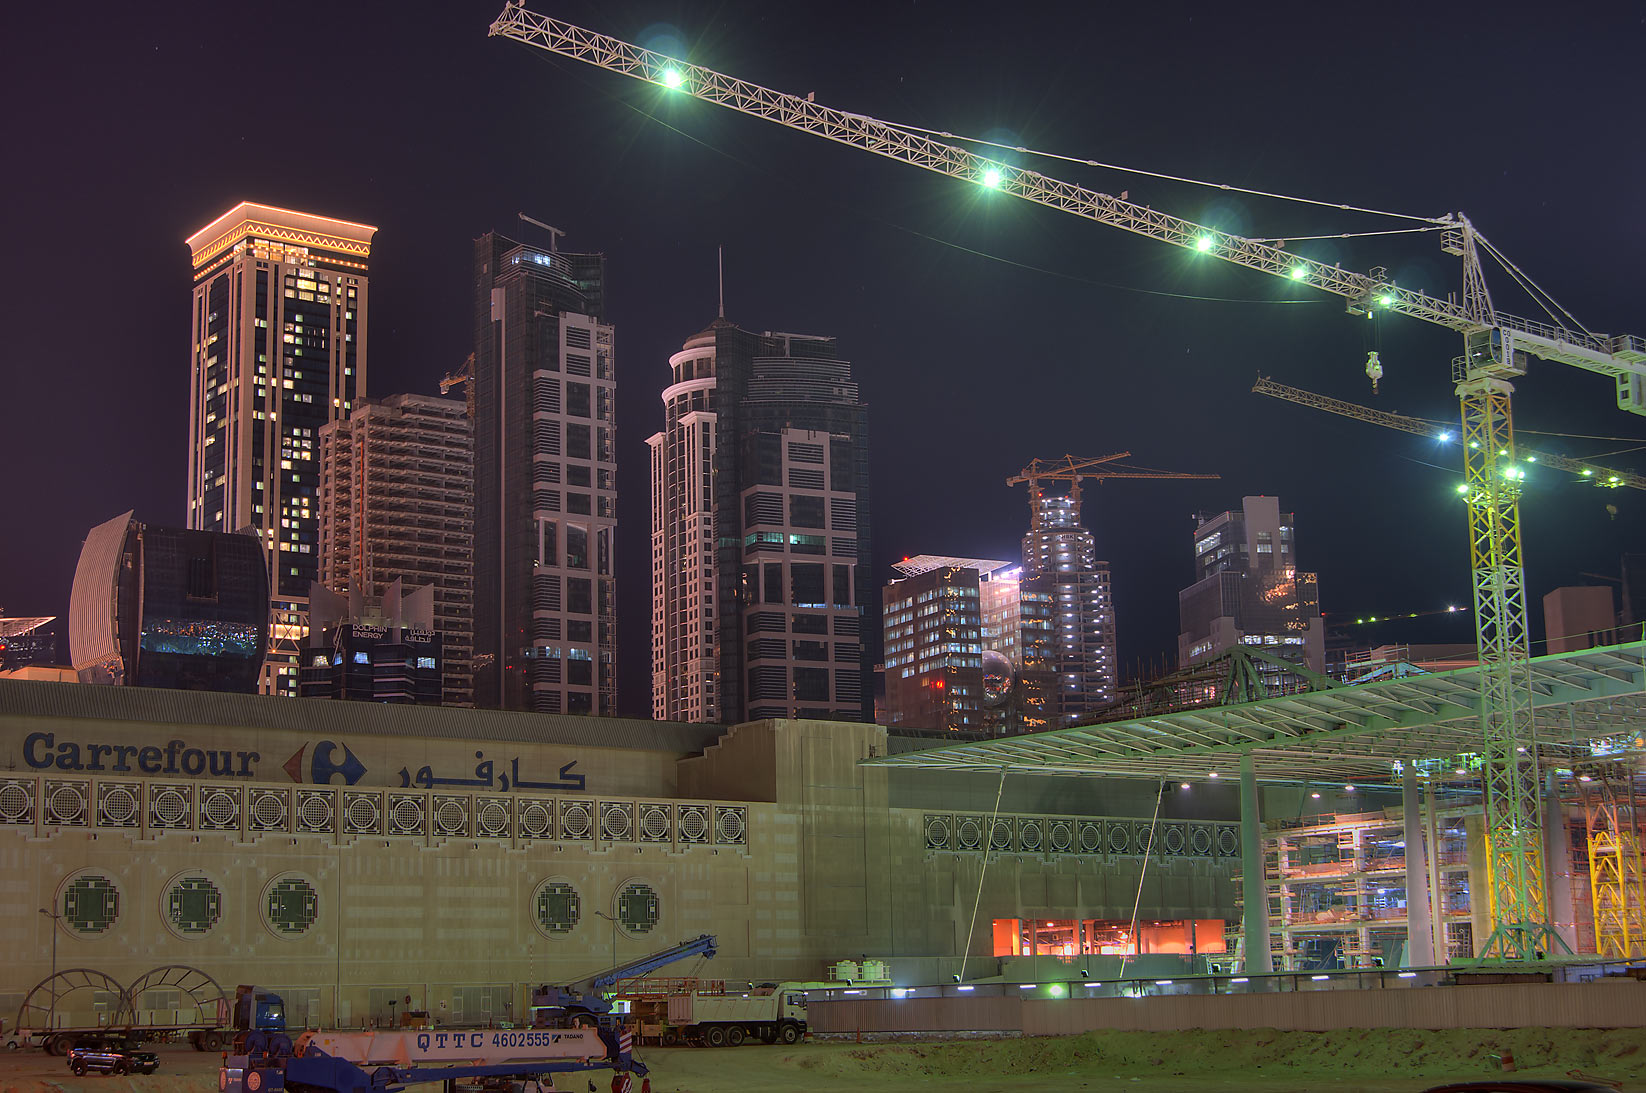 Construction of Convention Center behind City Center Mall. Doha, Qatar